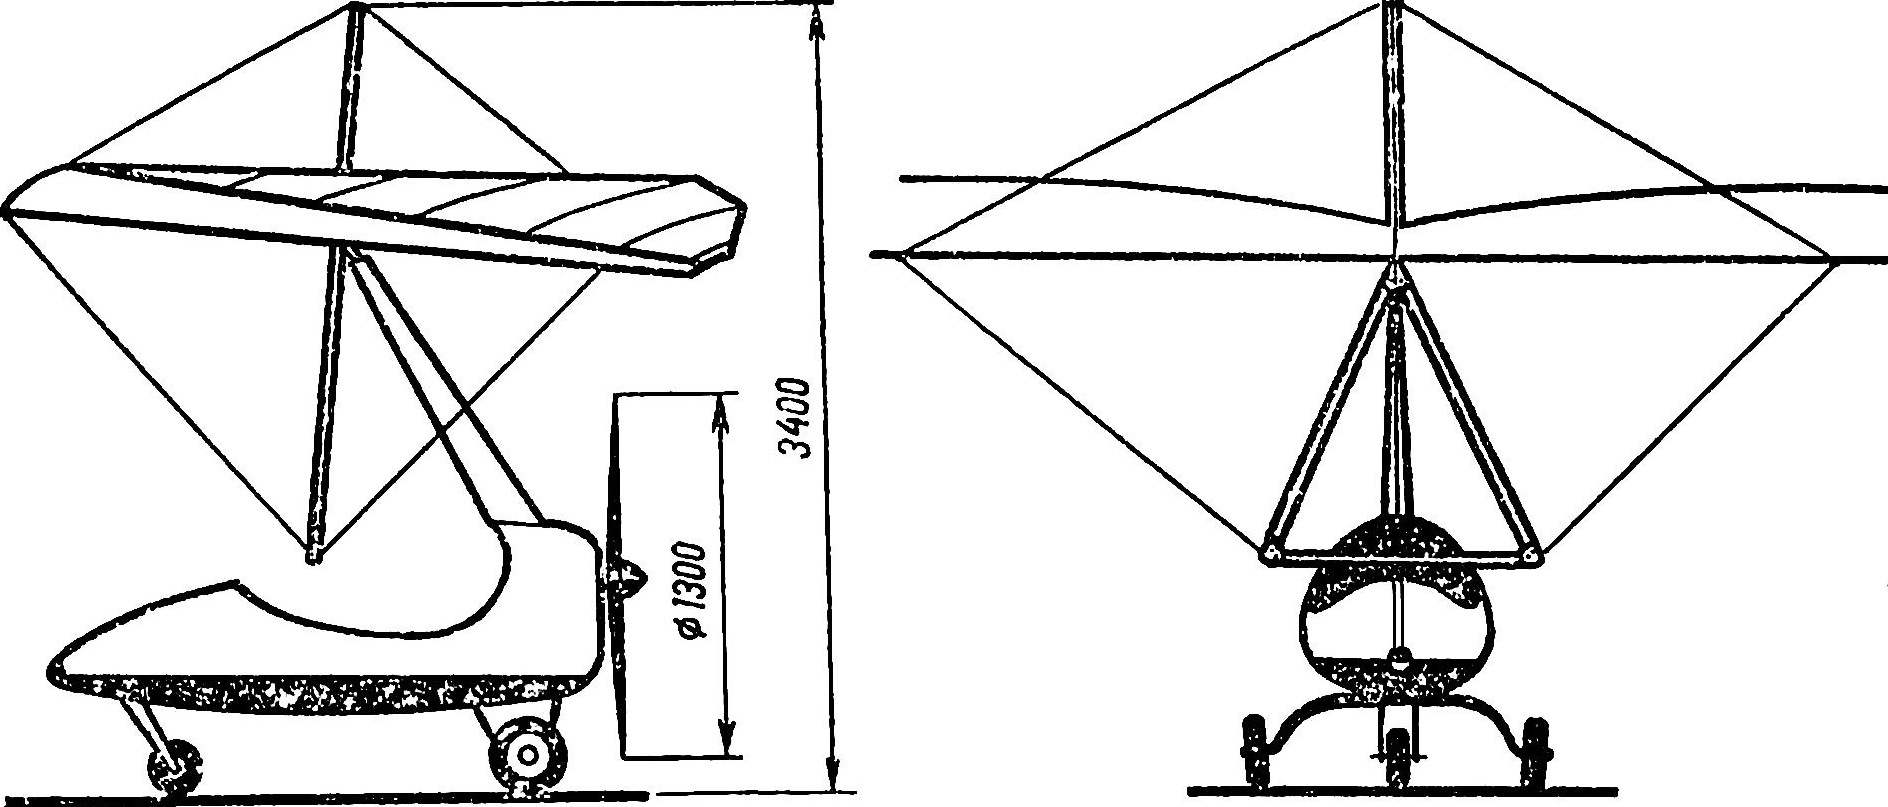 Fig. 3. Trike T-4 OKB O. K. Antonov — classical apparatus with beam trike.